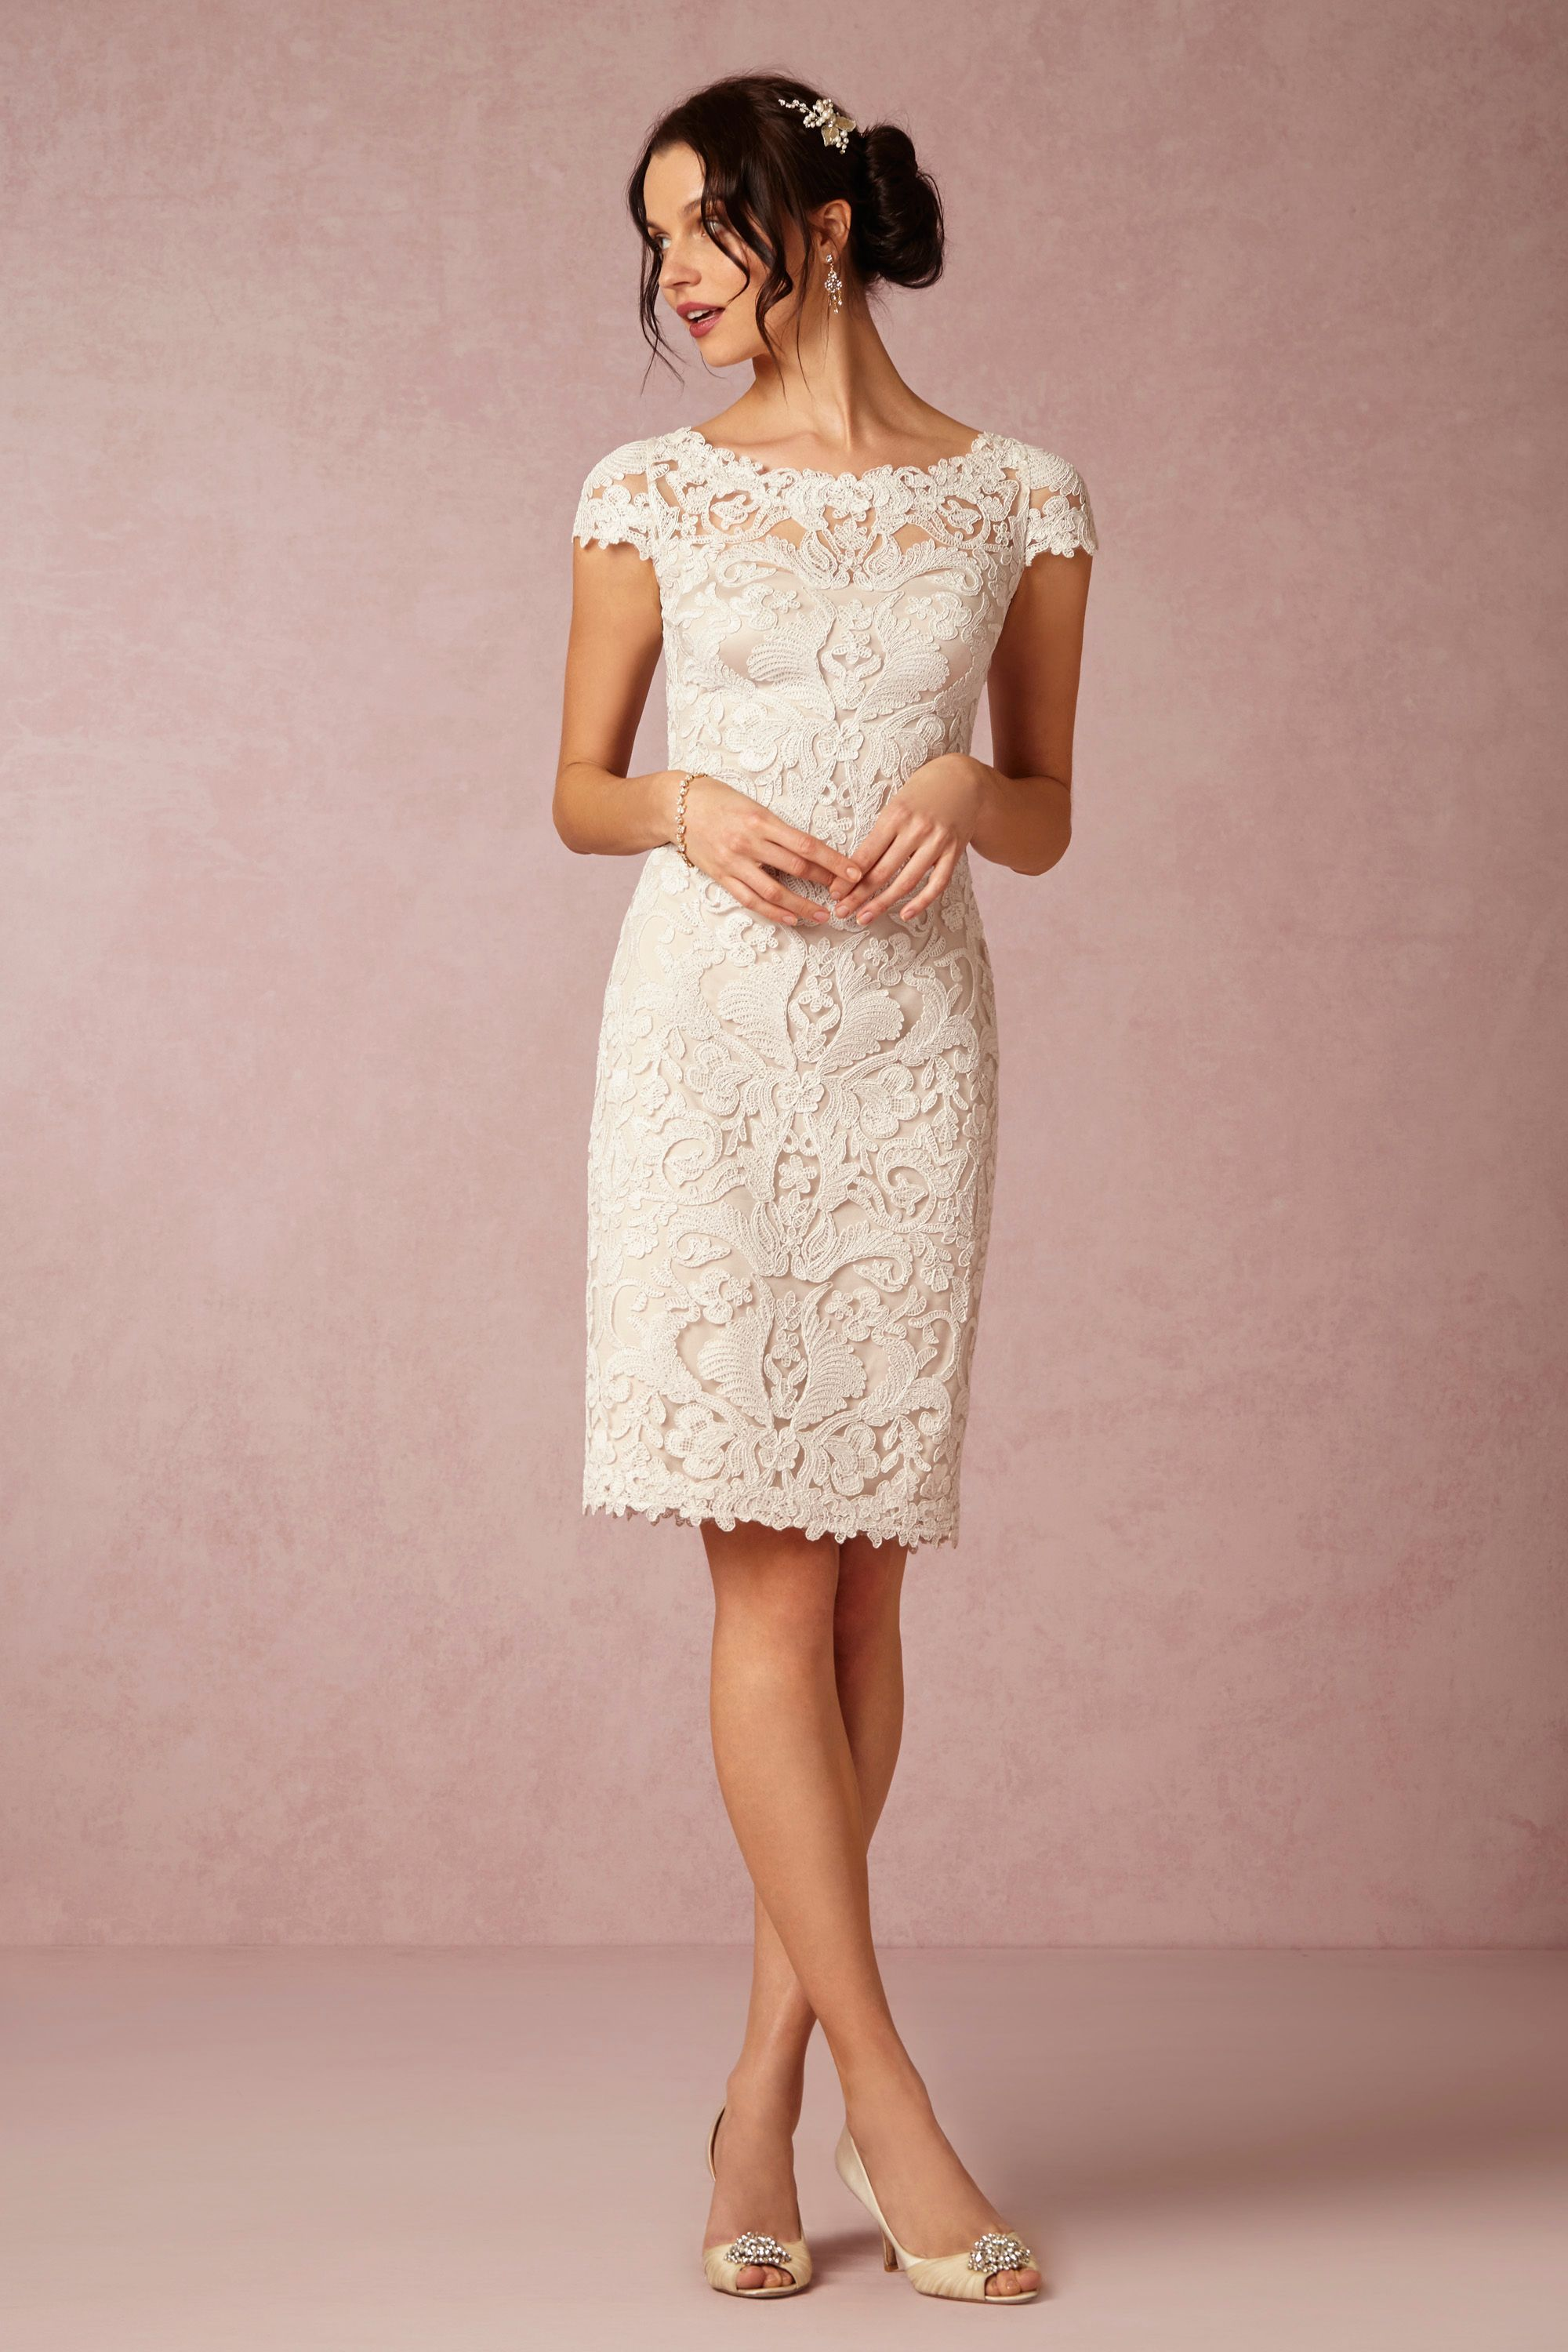 50 Little White Dresses For Brides To Wear To Wedding Events | Mid ...